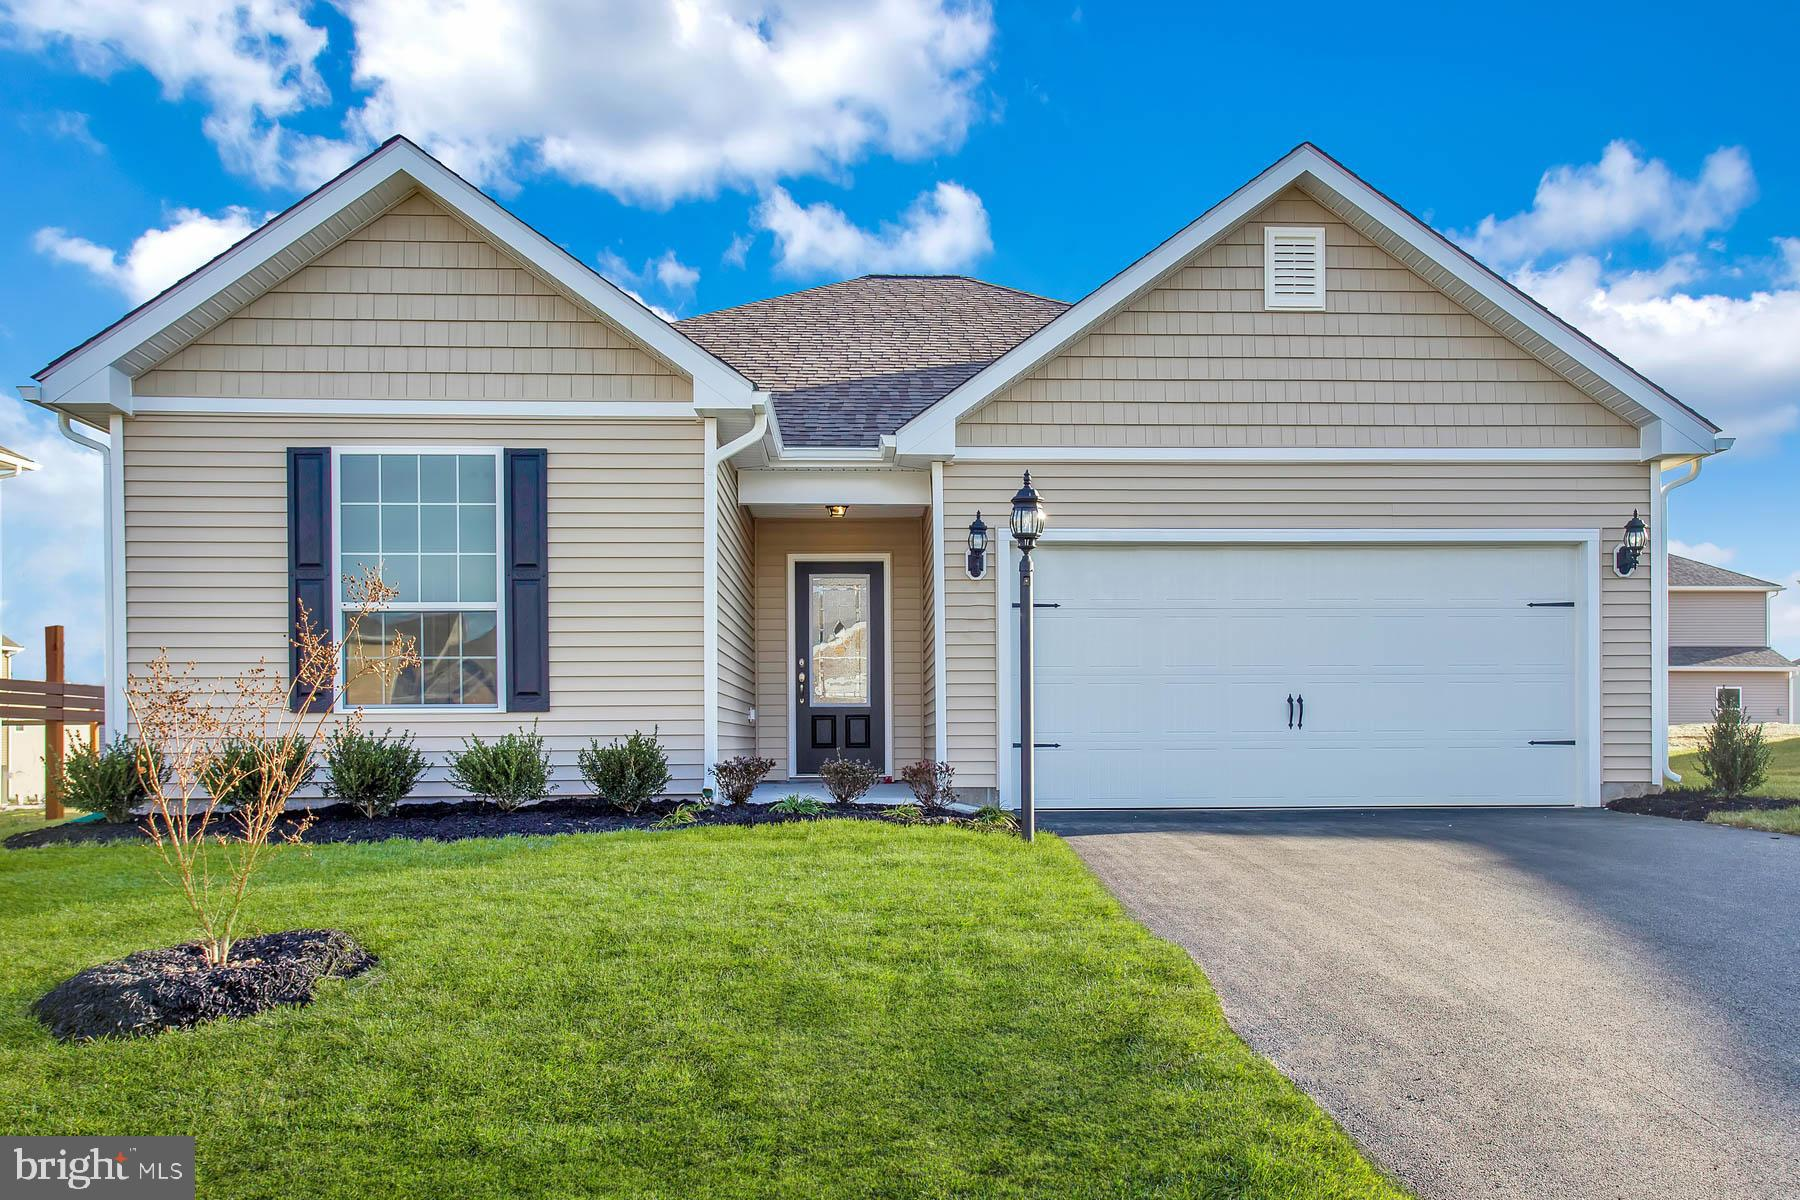 This meticulously designed single-story home features the ideal three-bedroom, two-bathroom layout w